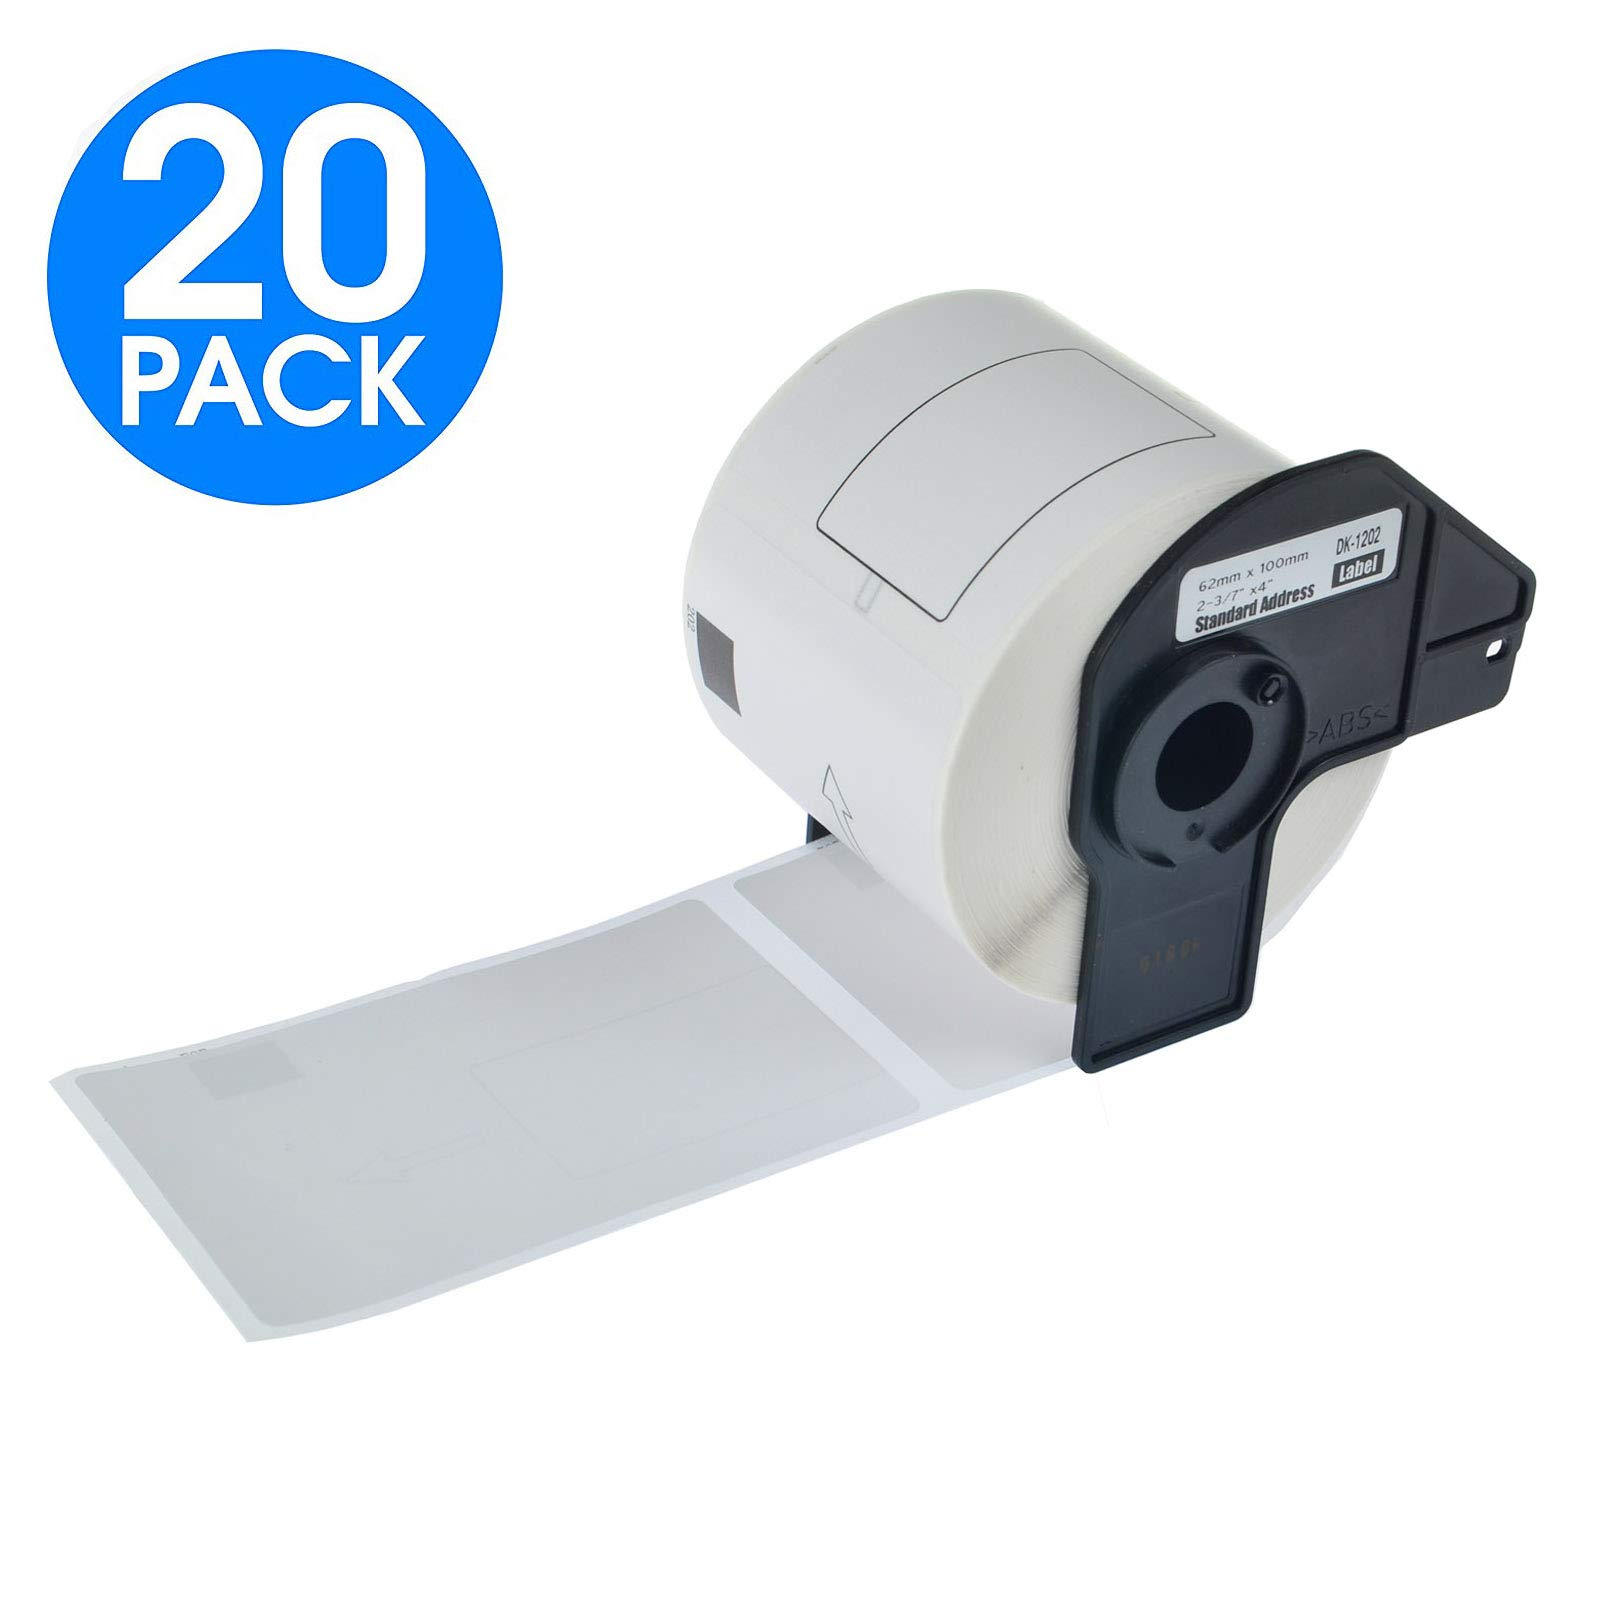 KCYMTONER 20 Rolls DK-1202 Continuous Length White Address Paper Labels 2-3/7 Inches (62mm) by 100mm (4'') use in Brother P-Touch QL-Series Printers QL-560 QL-570 QL-1060N,Includes (20) Snap-On-Frame